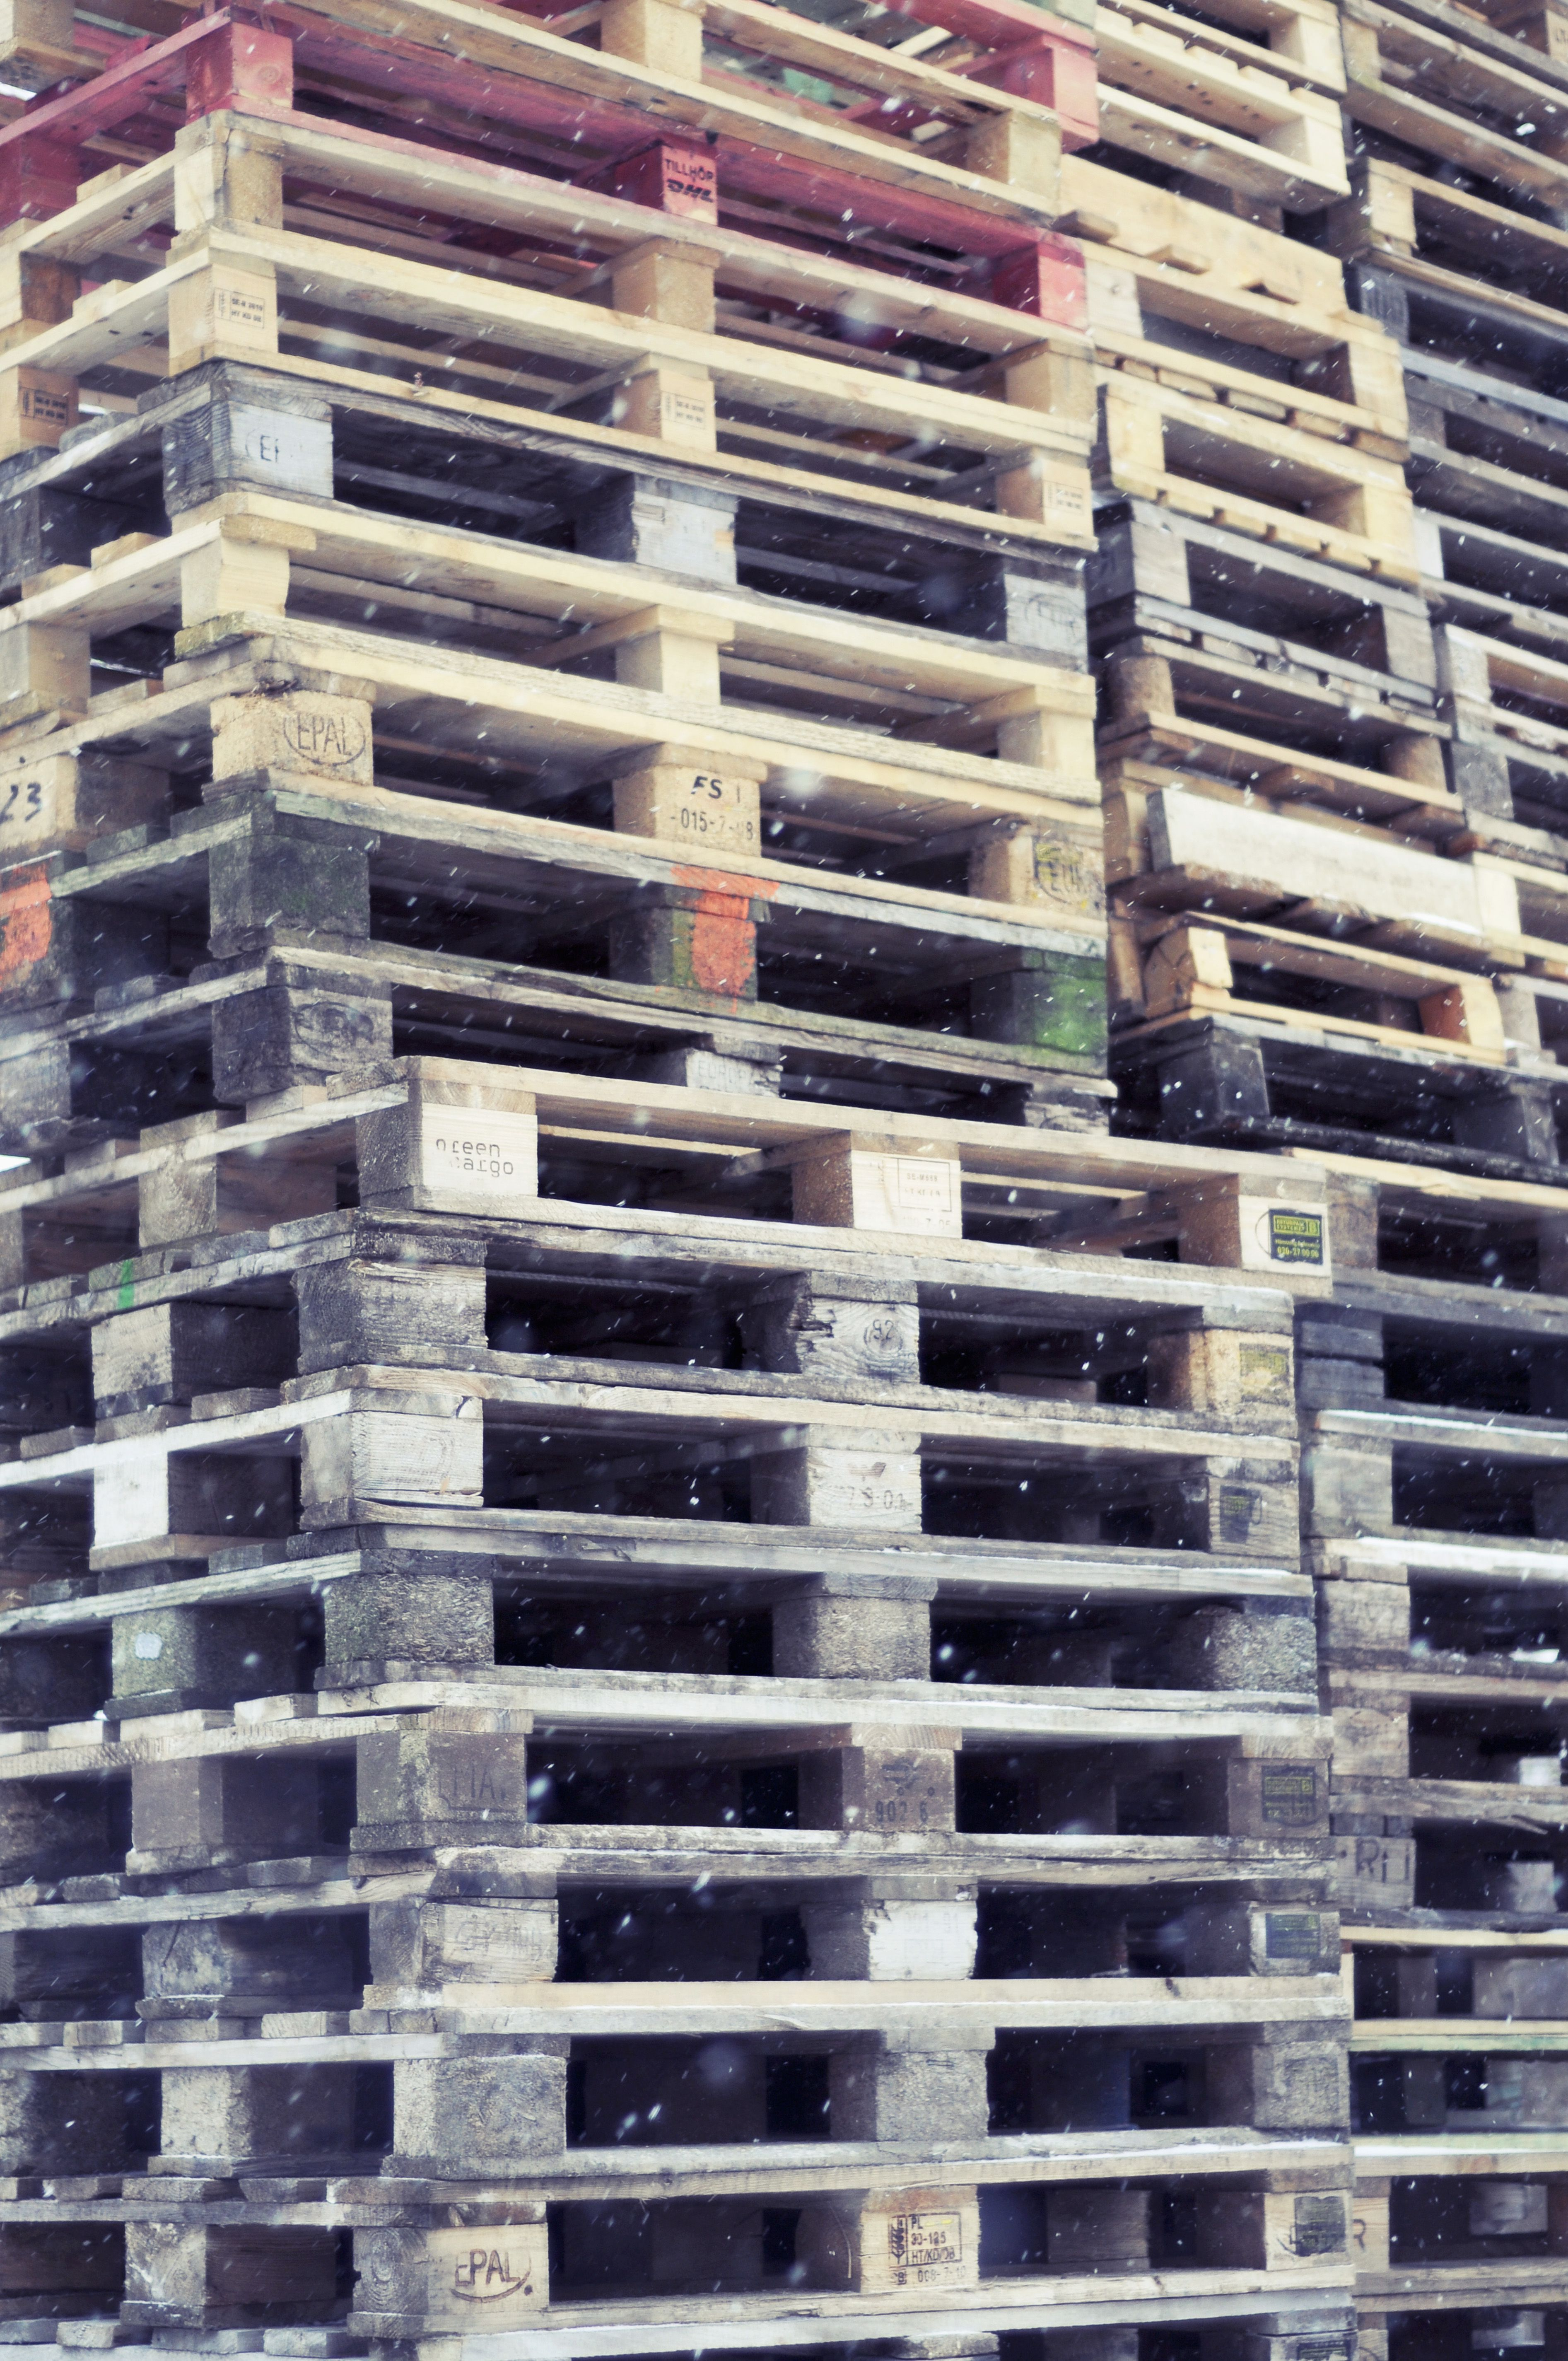 Mold Free Pallets Start with Moisture Control. Pallet Dismantling or Disassembly Equipment